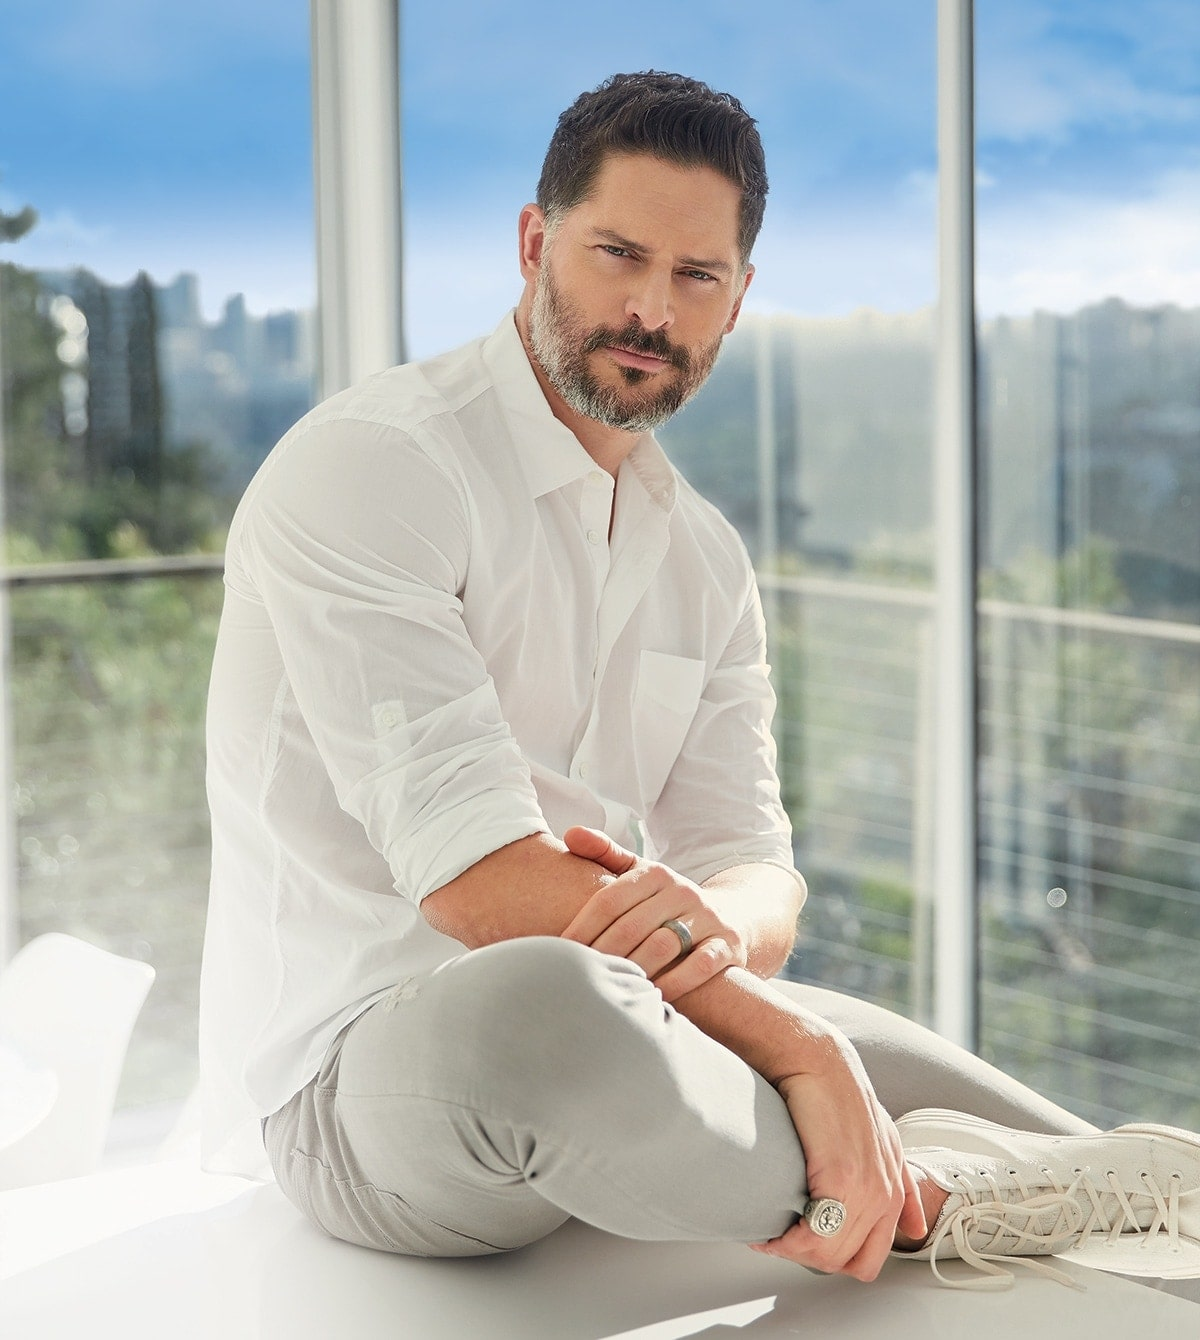 Joe Manganiello on Being Typecast for His Physique, His ...